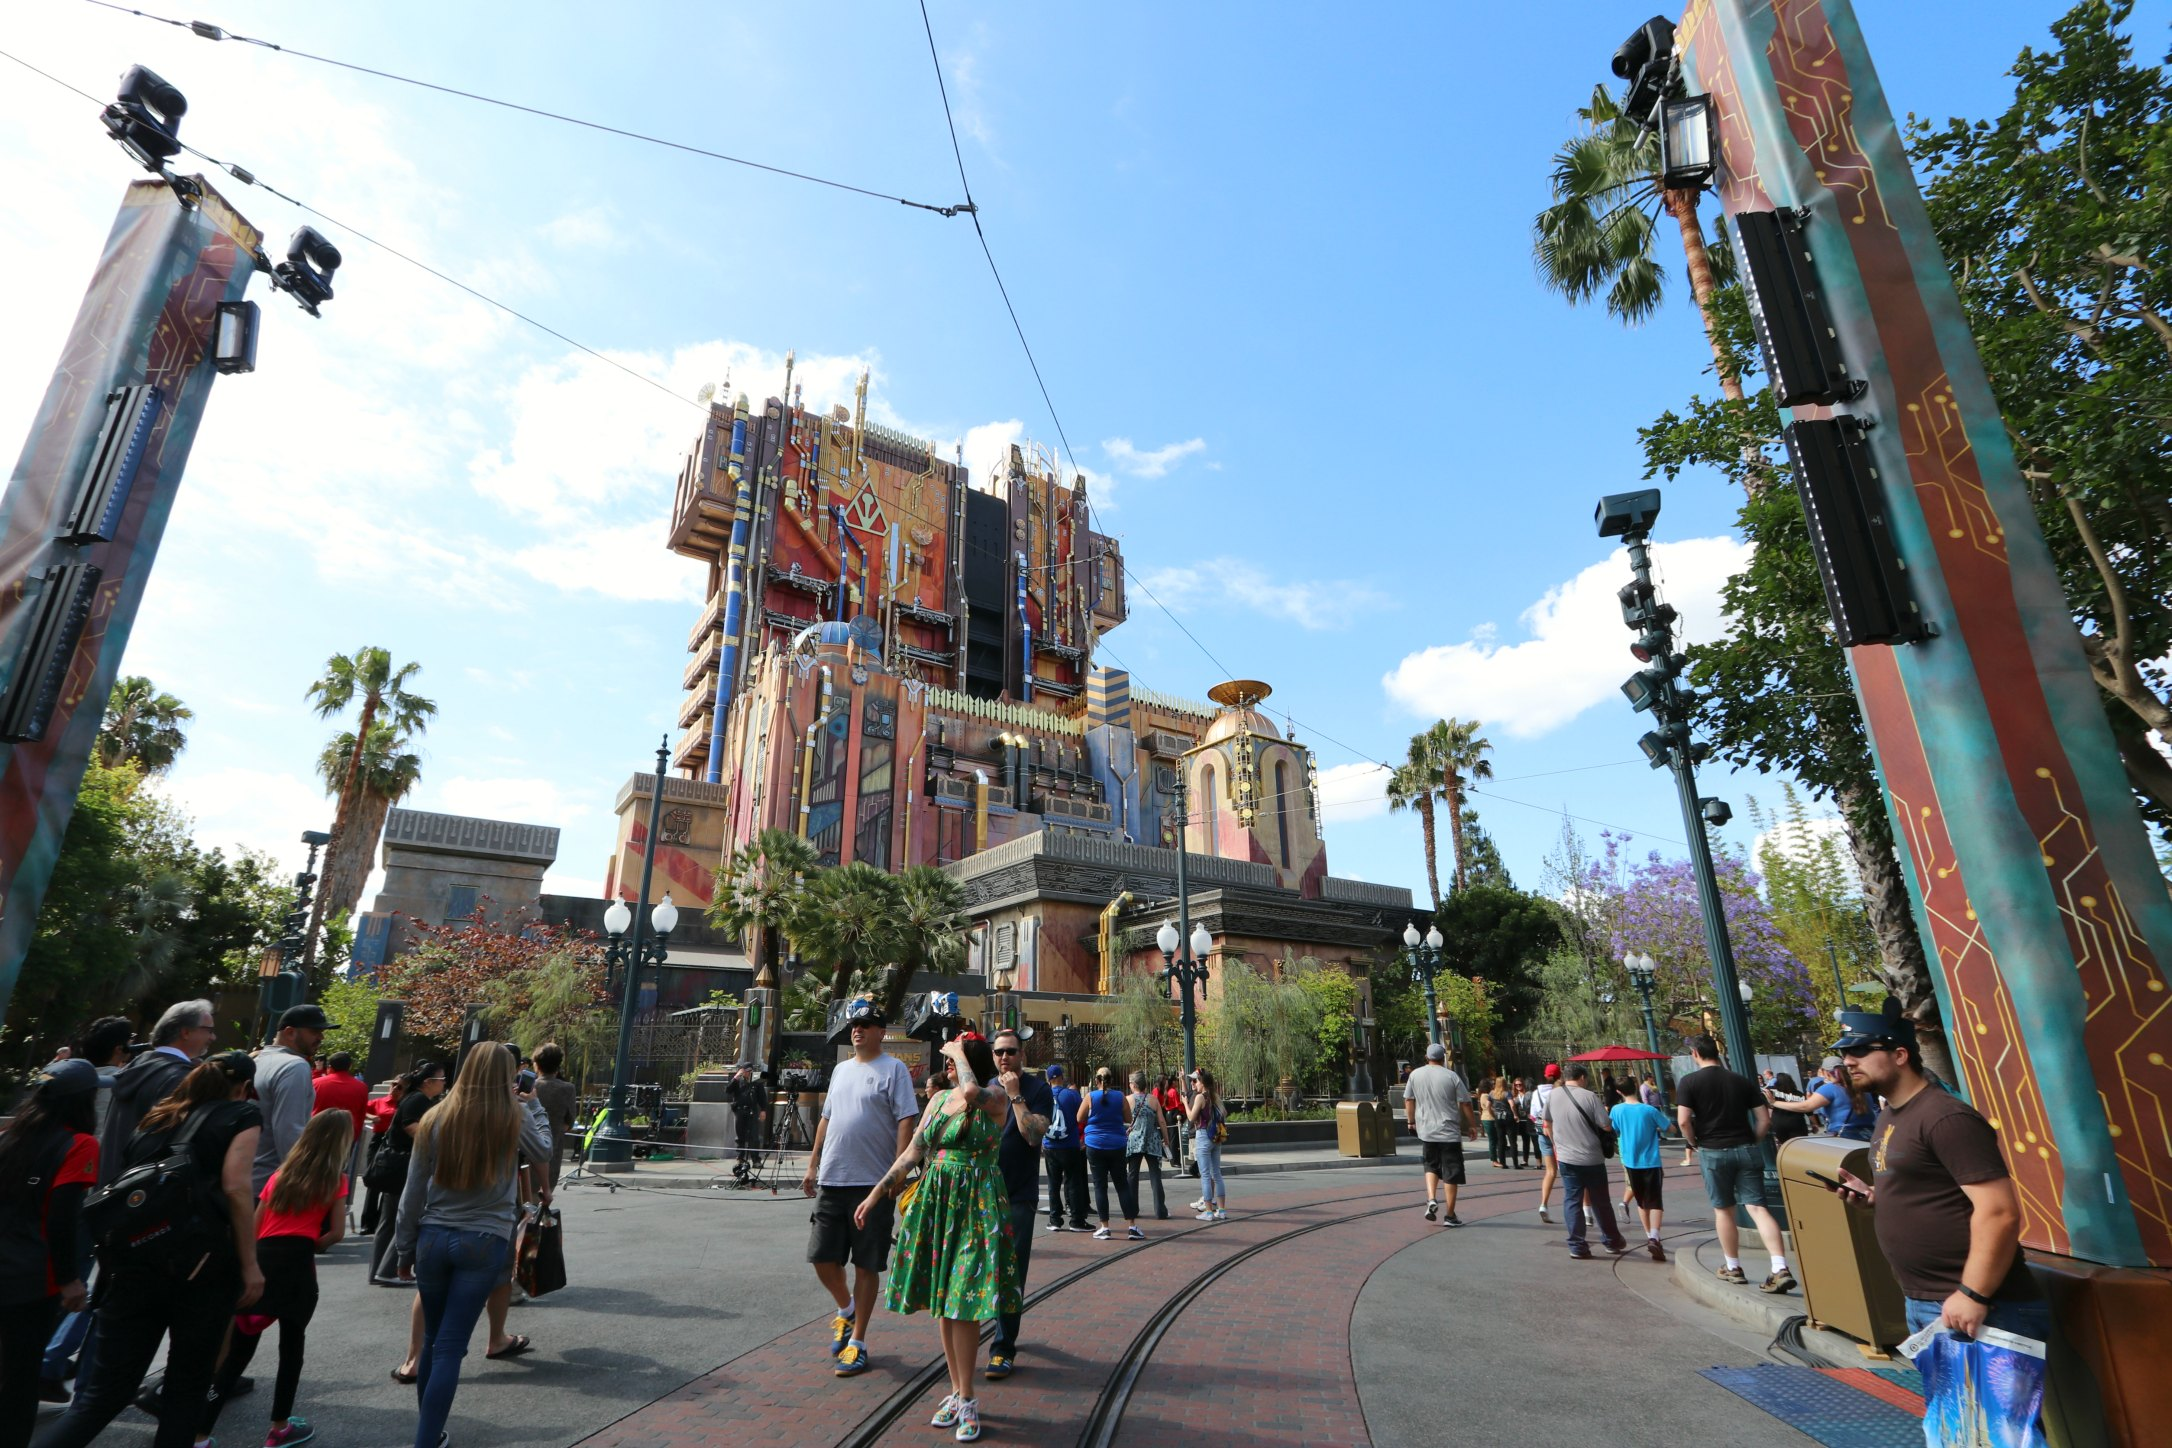 the old tower of terror